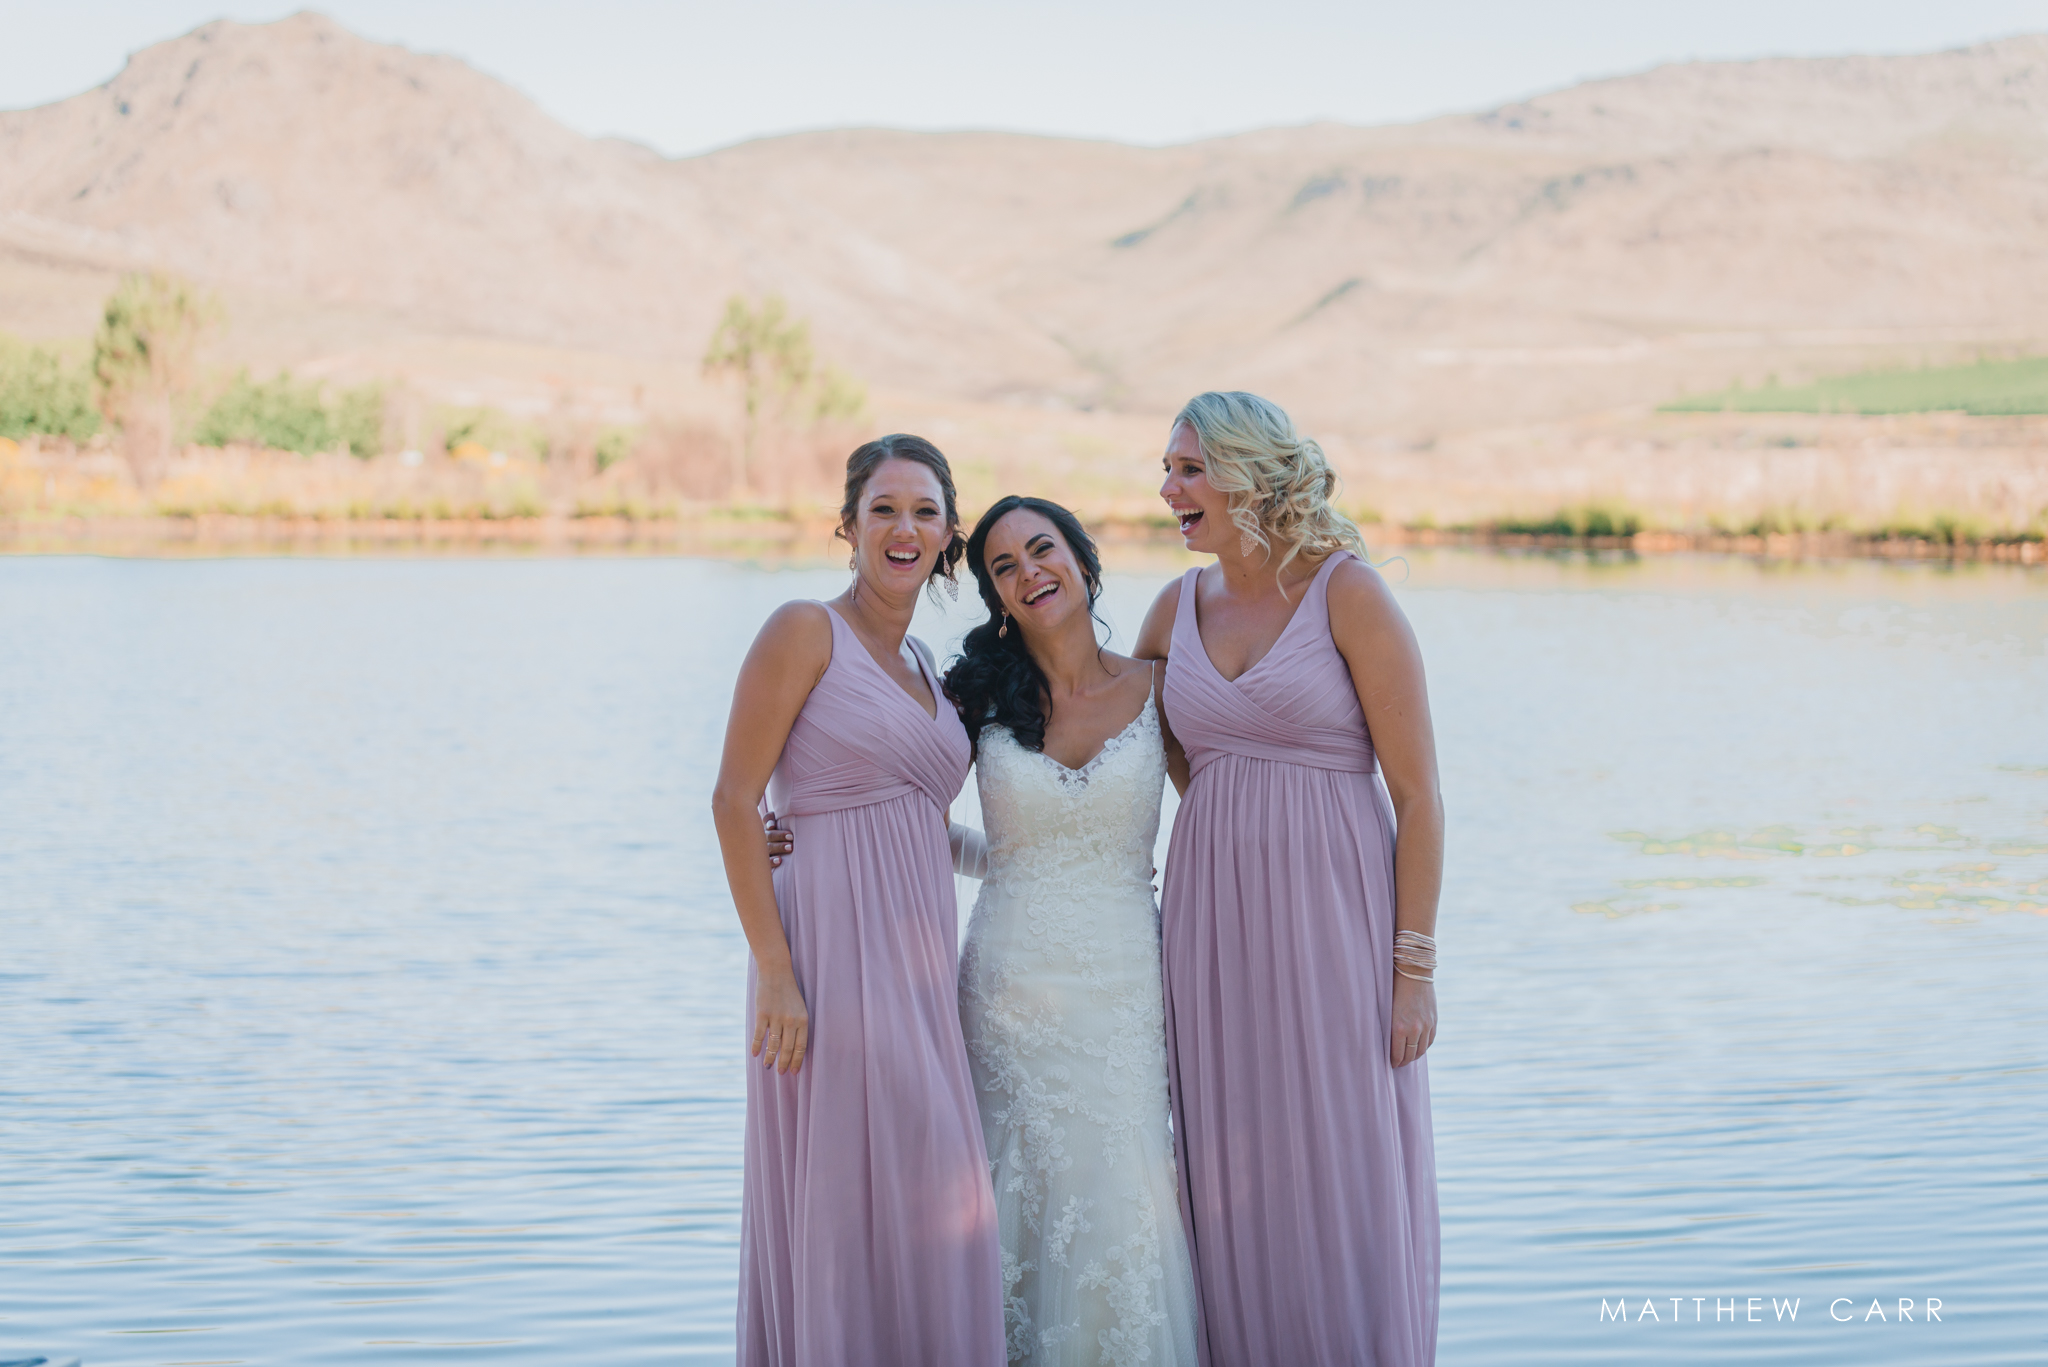 bridal party - low res (for viewing, social media) (33 of 45).JPG